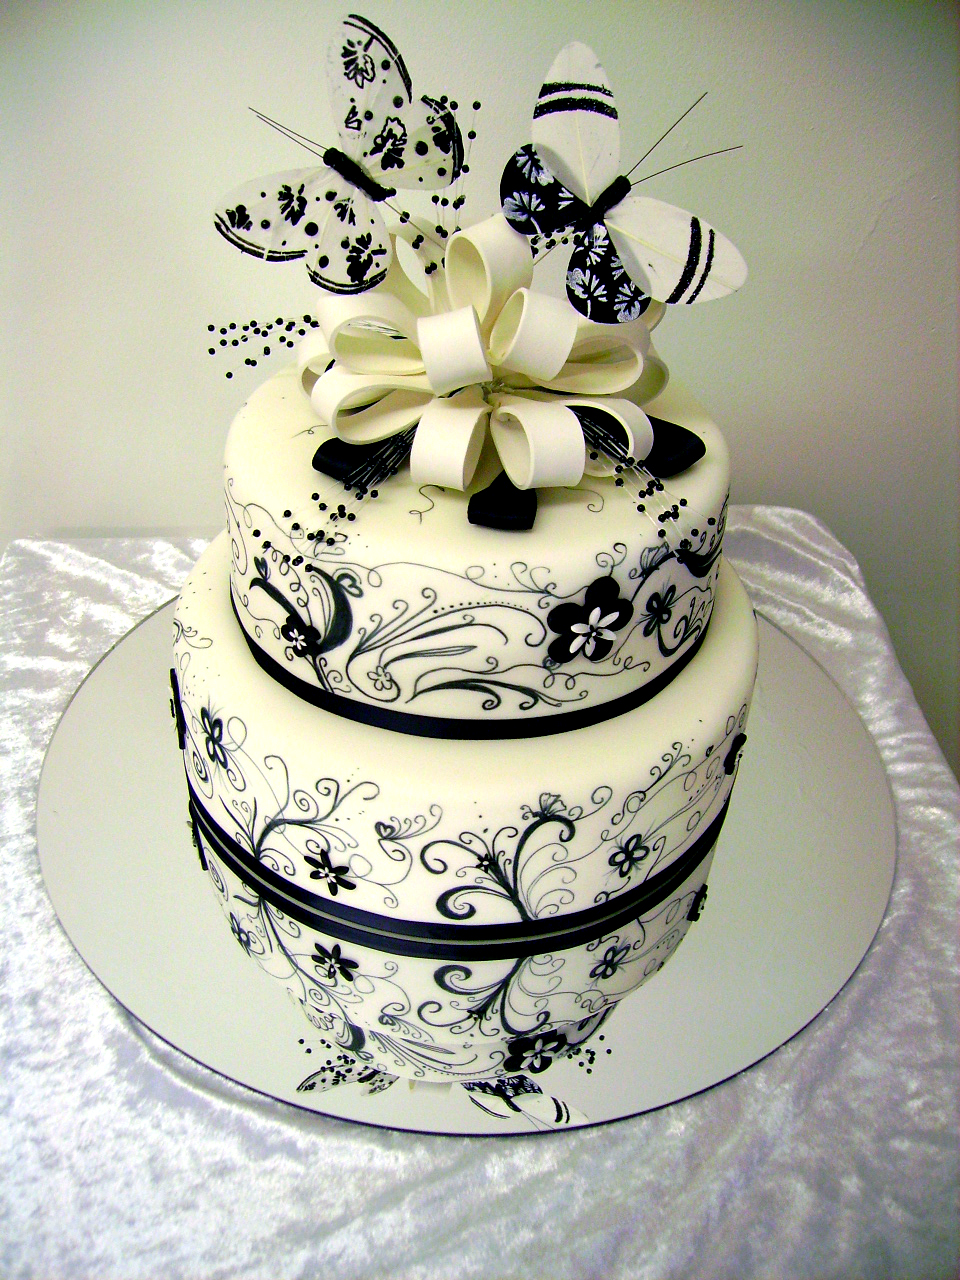 Cake Decorating : Black and white swirls wedding cake